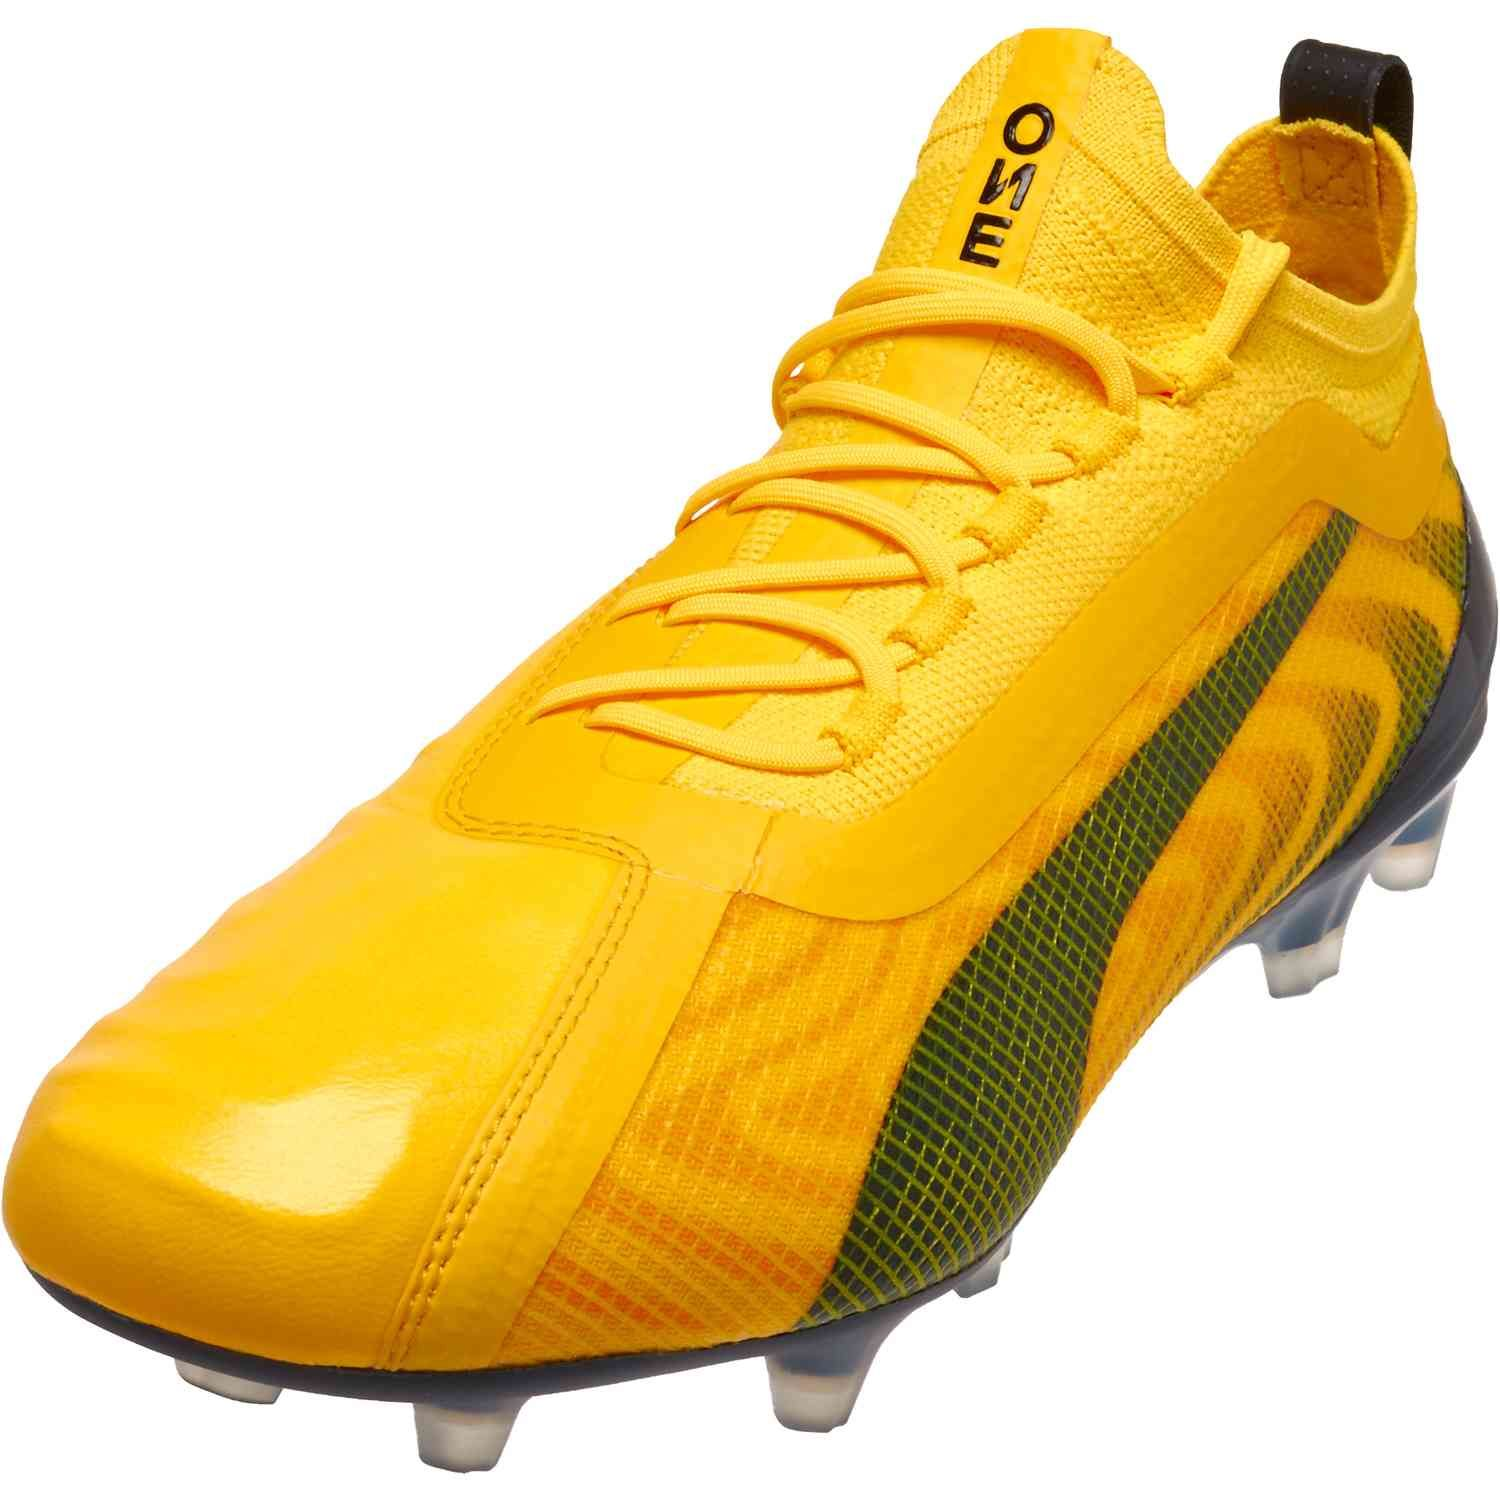 Puma One 20 1 Fg Spark Pack In 2020 Puma Soccer Shoes Sport Shoes